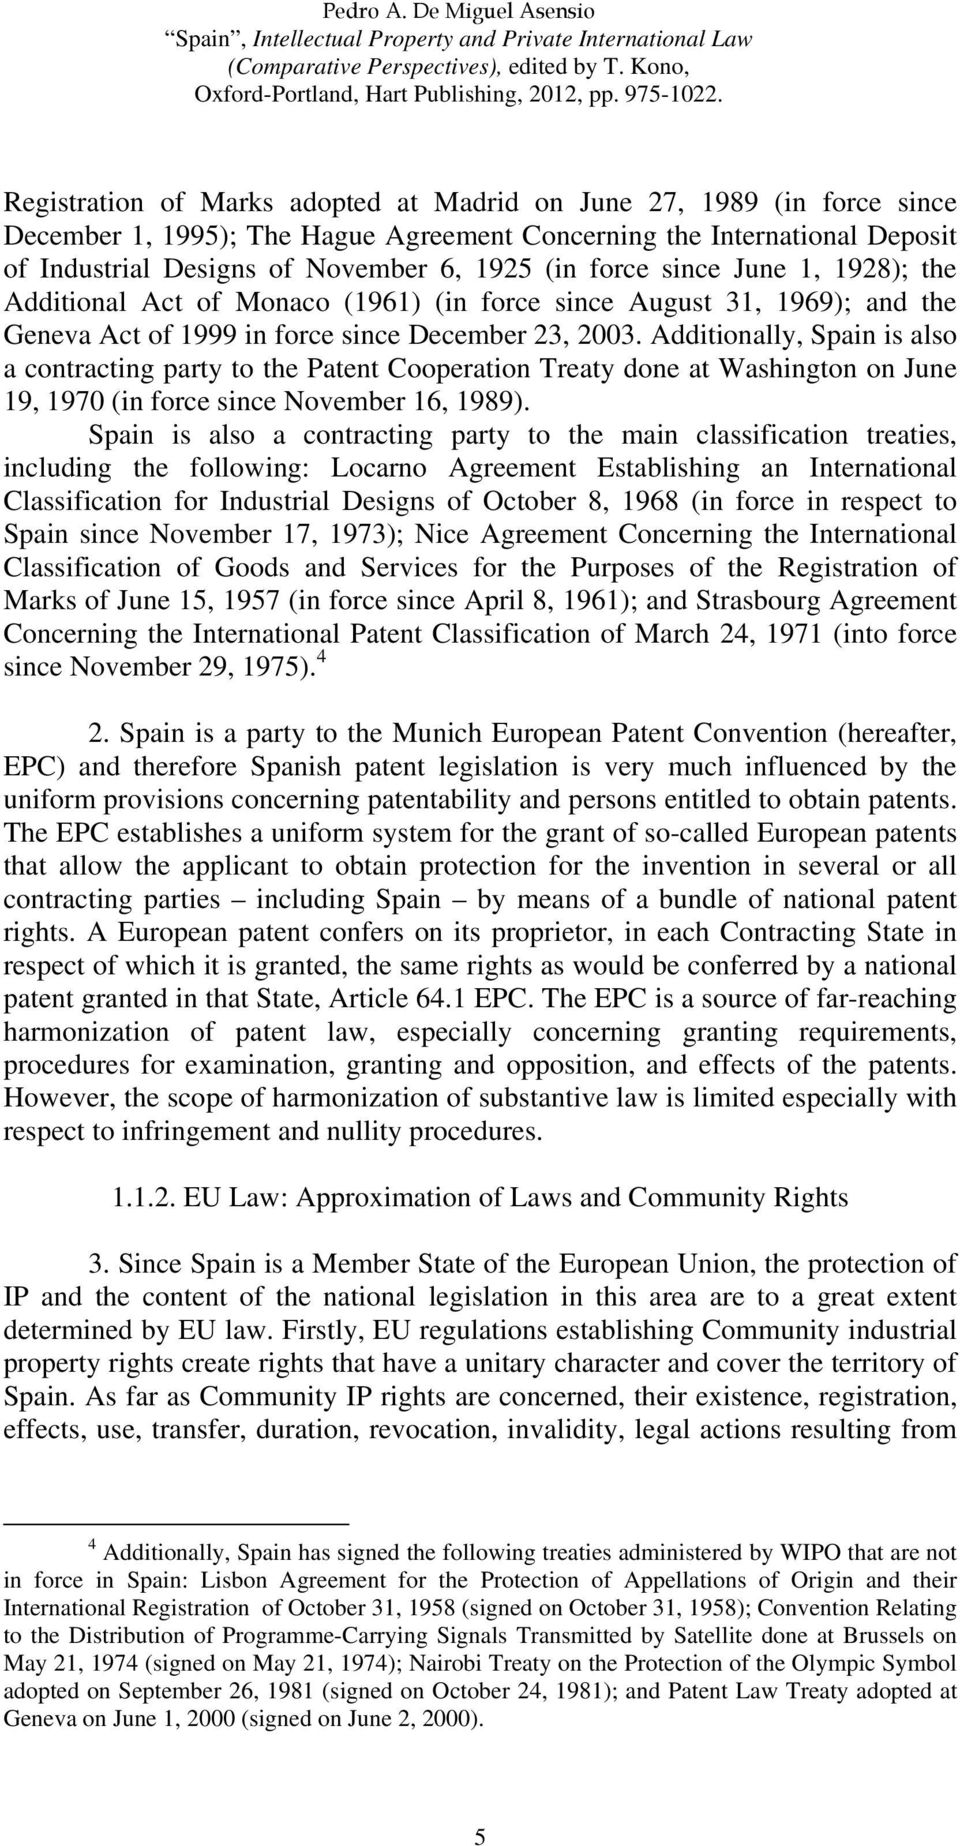 Additionally, Spain is also a contracting party to the Patent Cooperation Treaty done at Washington on June 19, 1970 (in force since November 16, 1989).